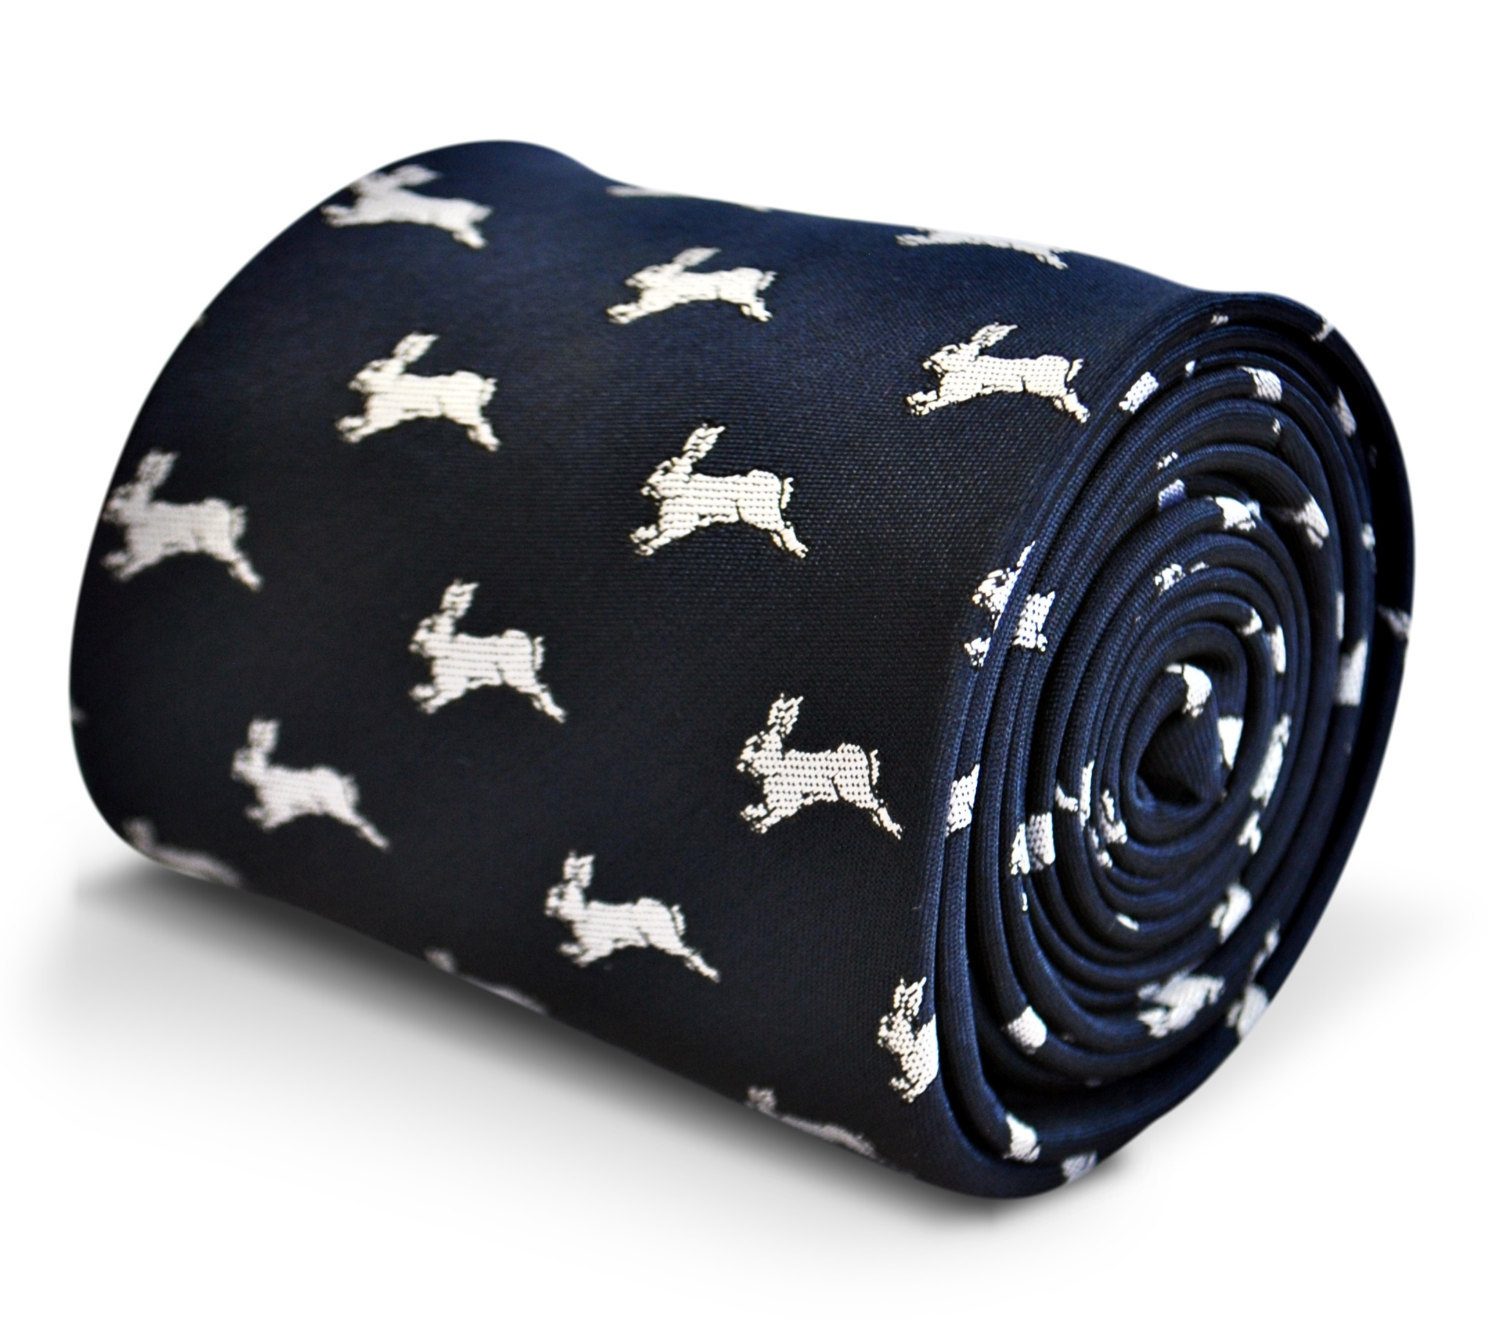 navy blue tie with leaping rabbit design with signature floral design to the rea